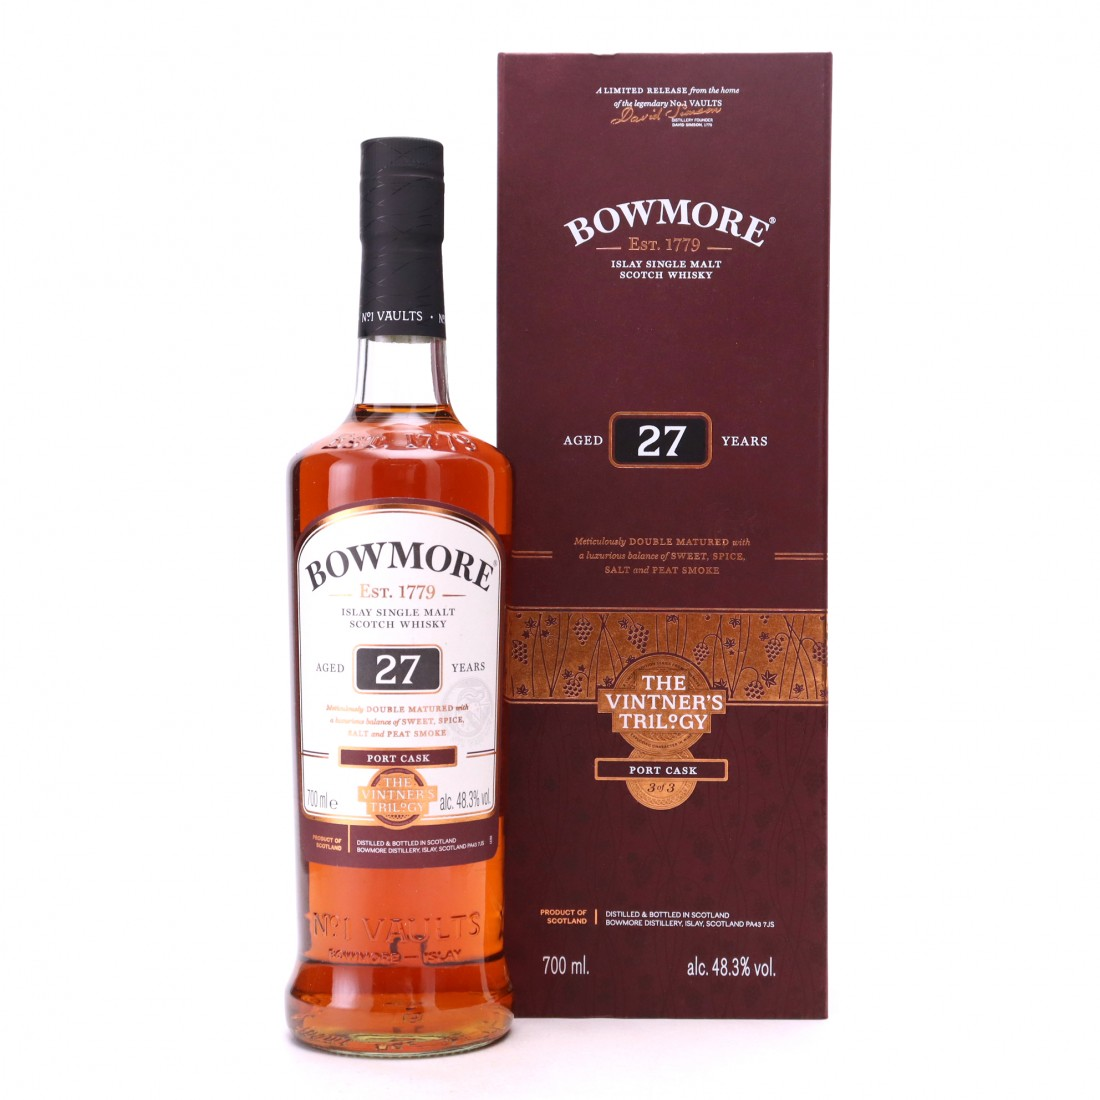 Bowmore 27 Year Old The Vintner's Trilogy III / Port Cask